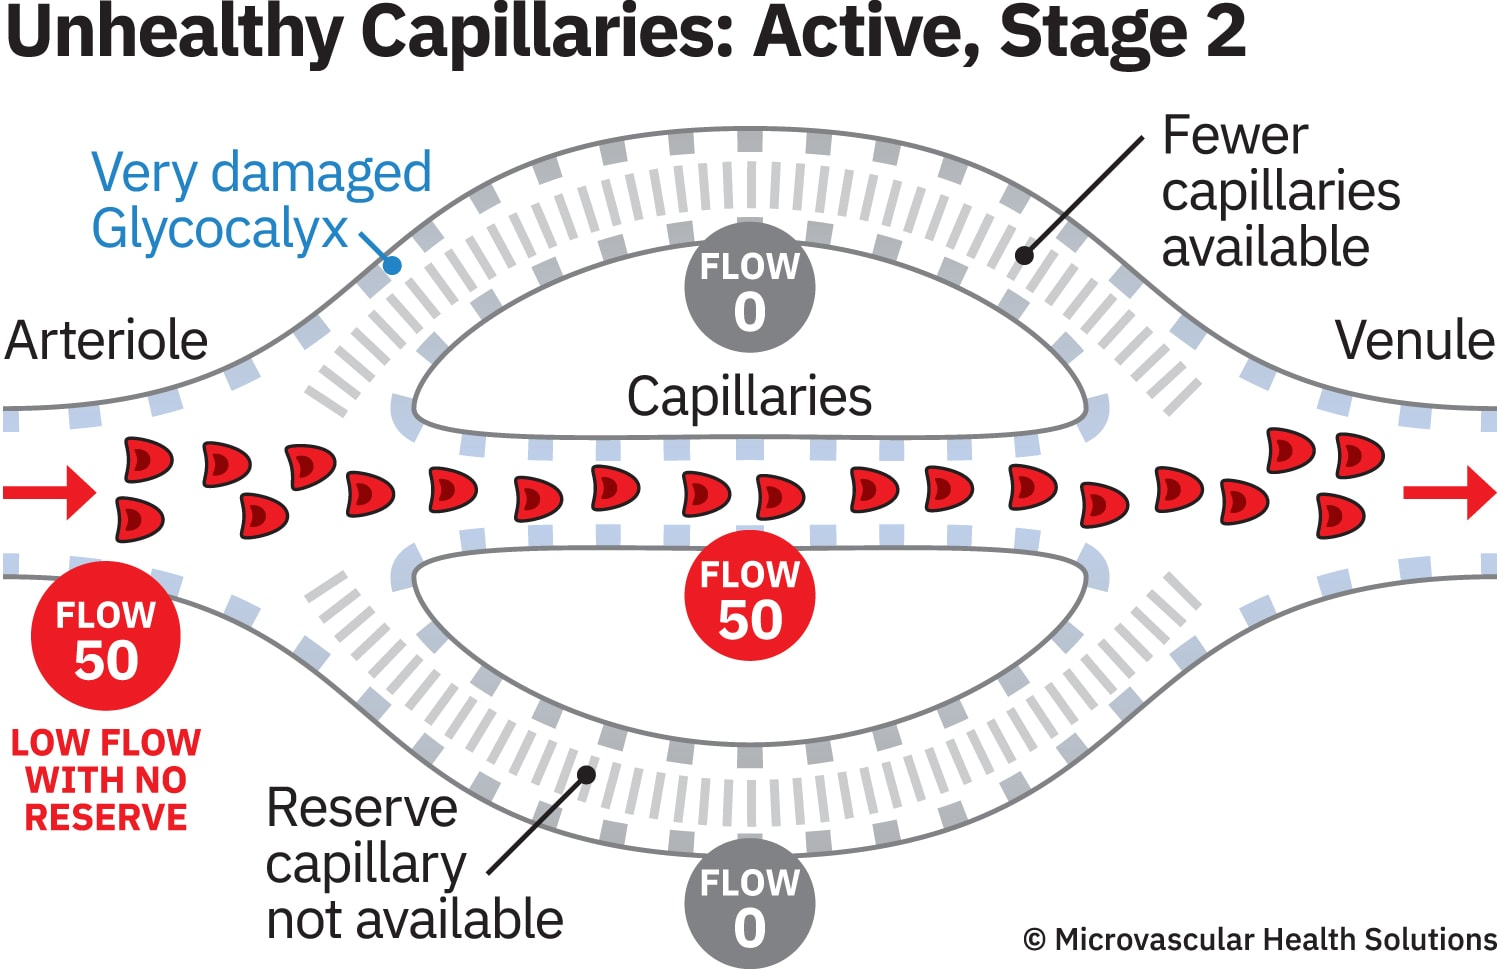 cap-unhealthy-active-stage2-MHS-1500